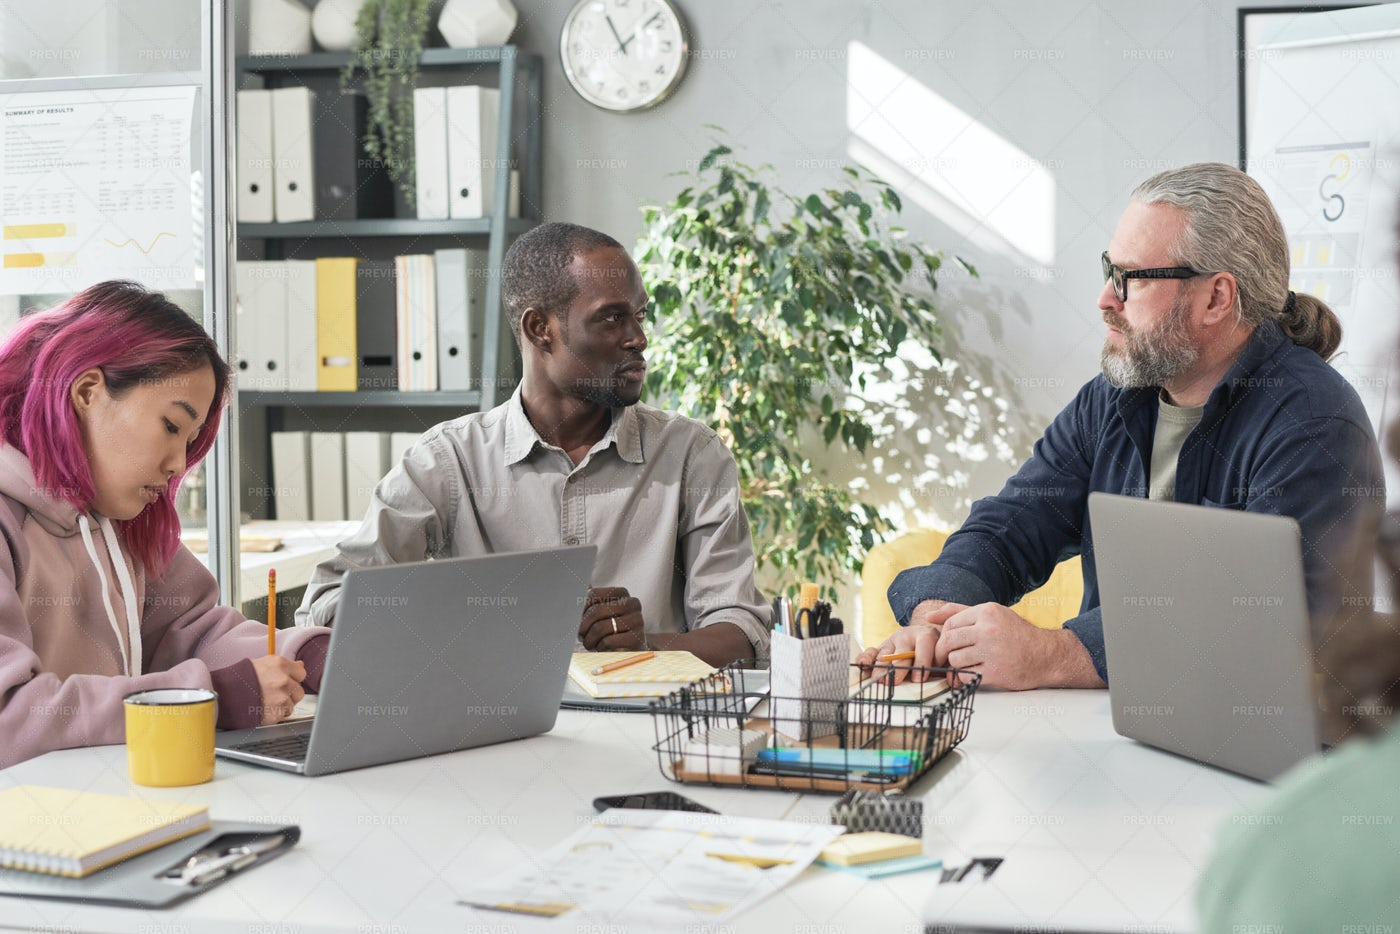 People Working In Team At Office: Stock Photos